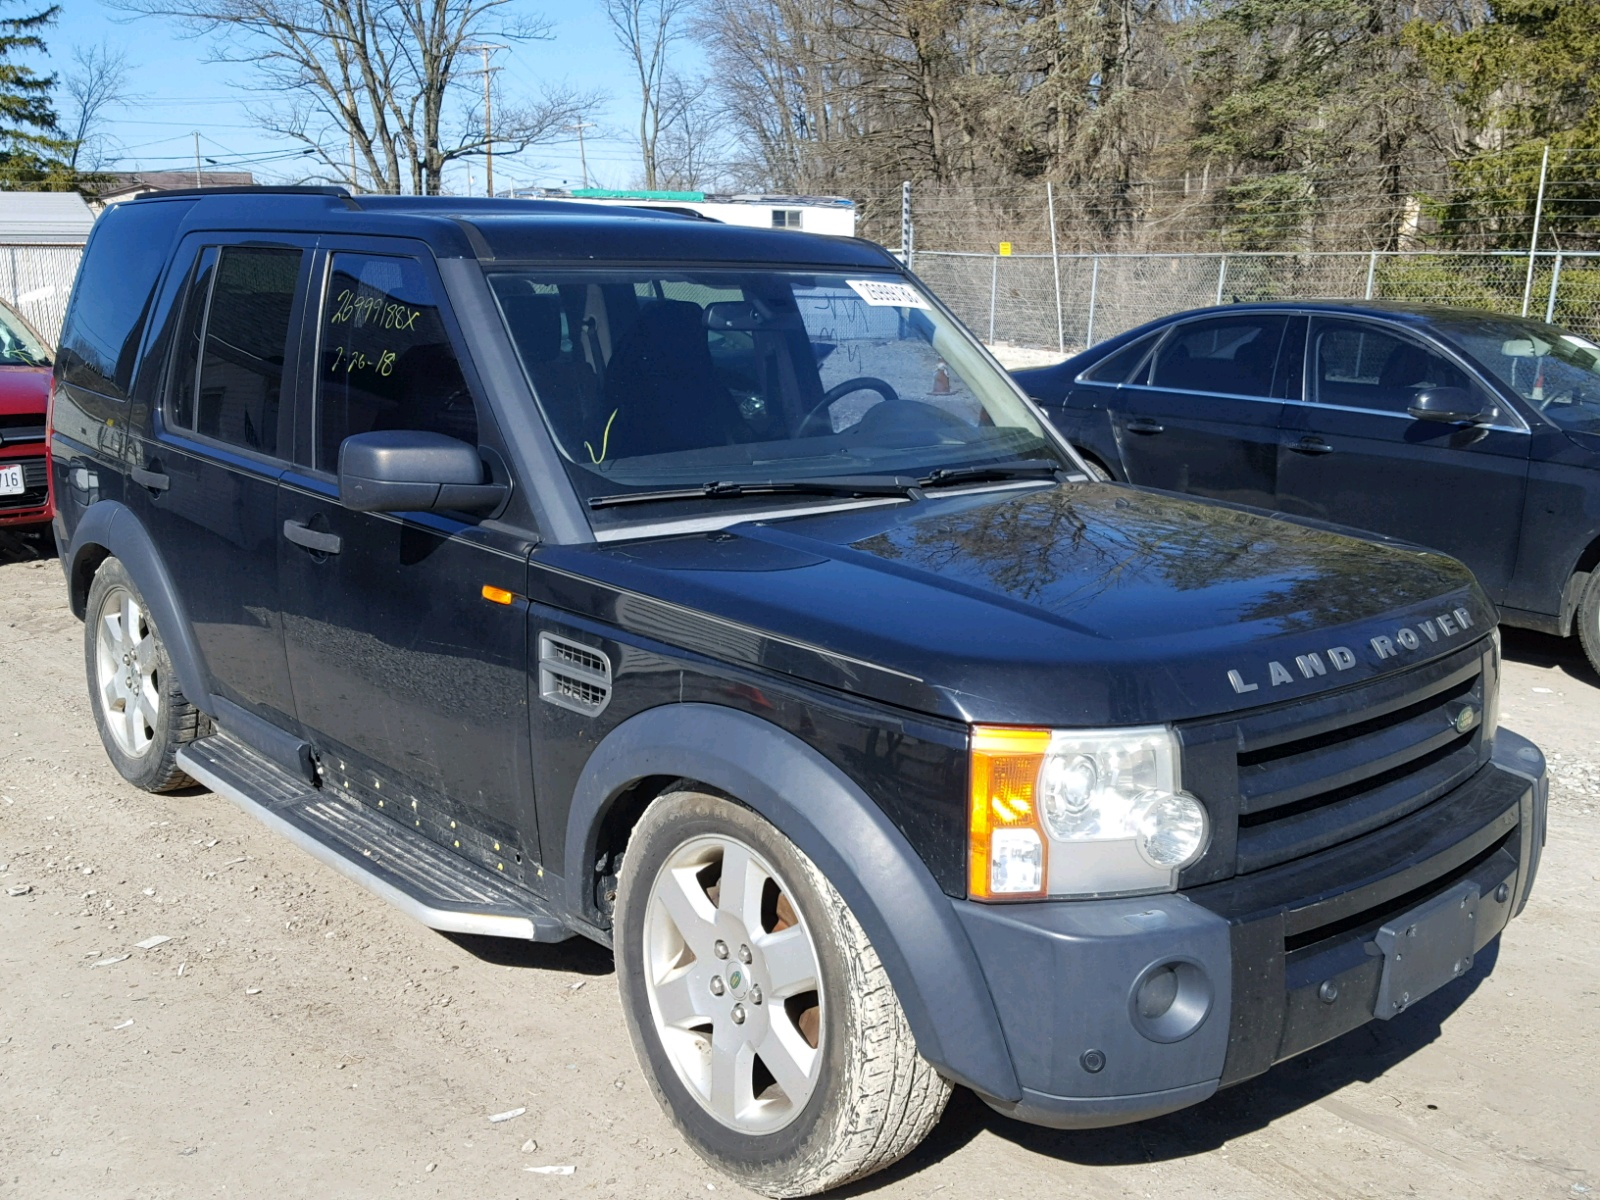 rover lot landrover pa for adamsburg hse sale bbca copart cars land at